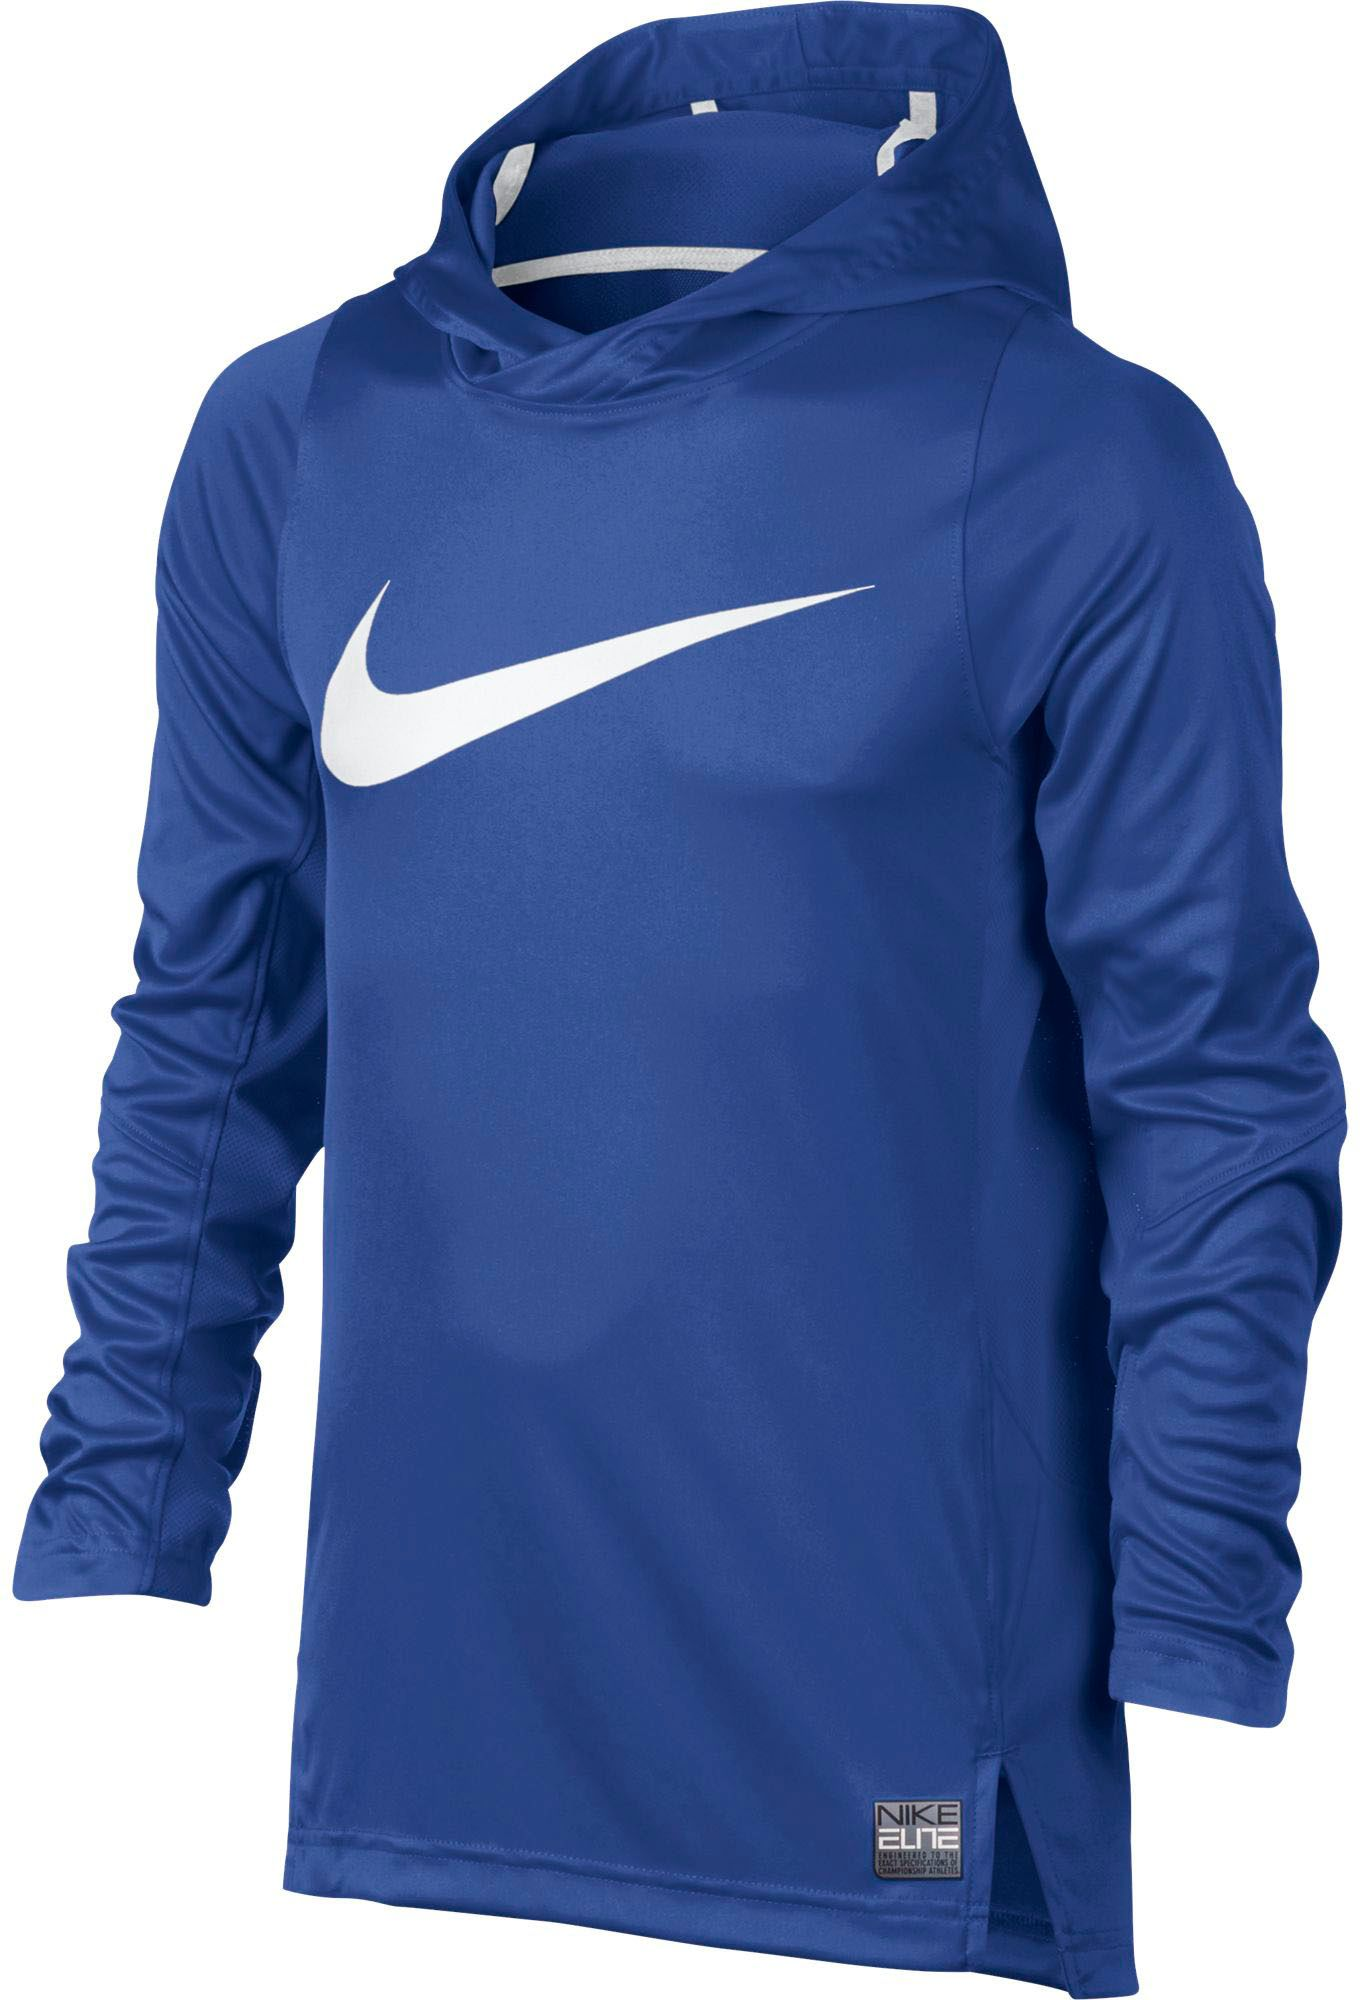 Boys Hoodies & Sweatshirts | Kids | DICK'S Sporting Goods